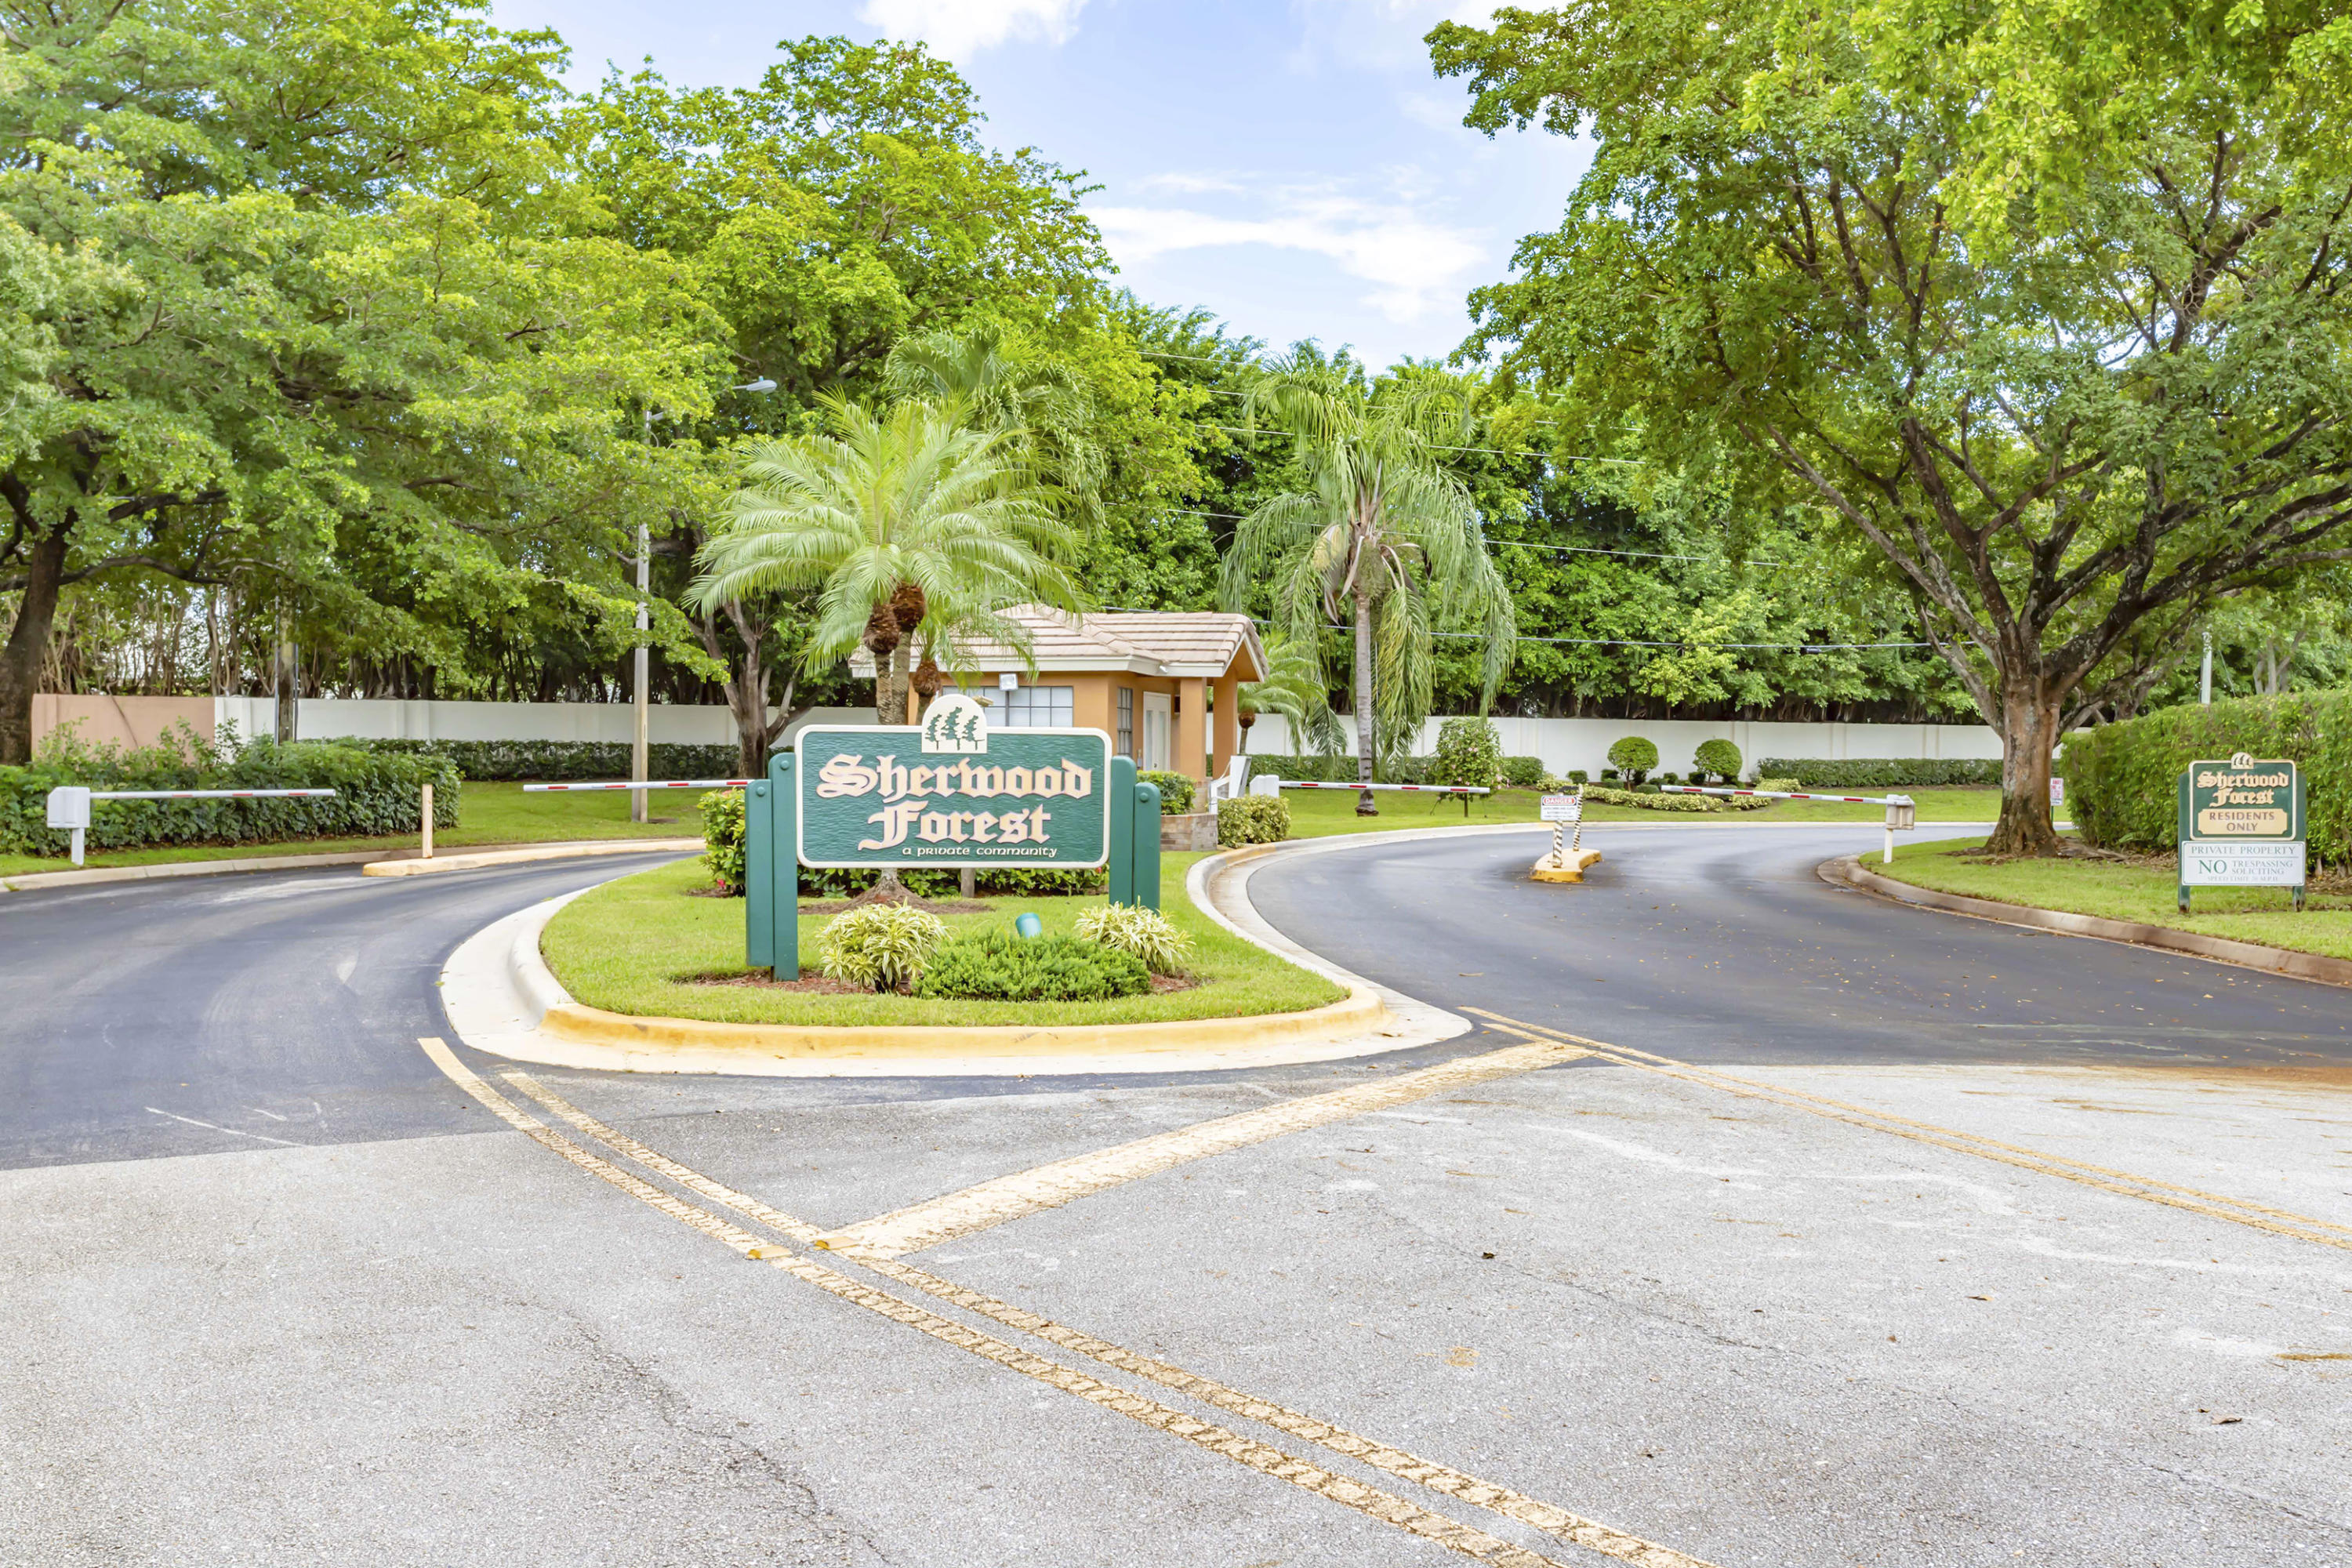 SHERWOOD FOREST DELRAY BEACH